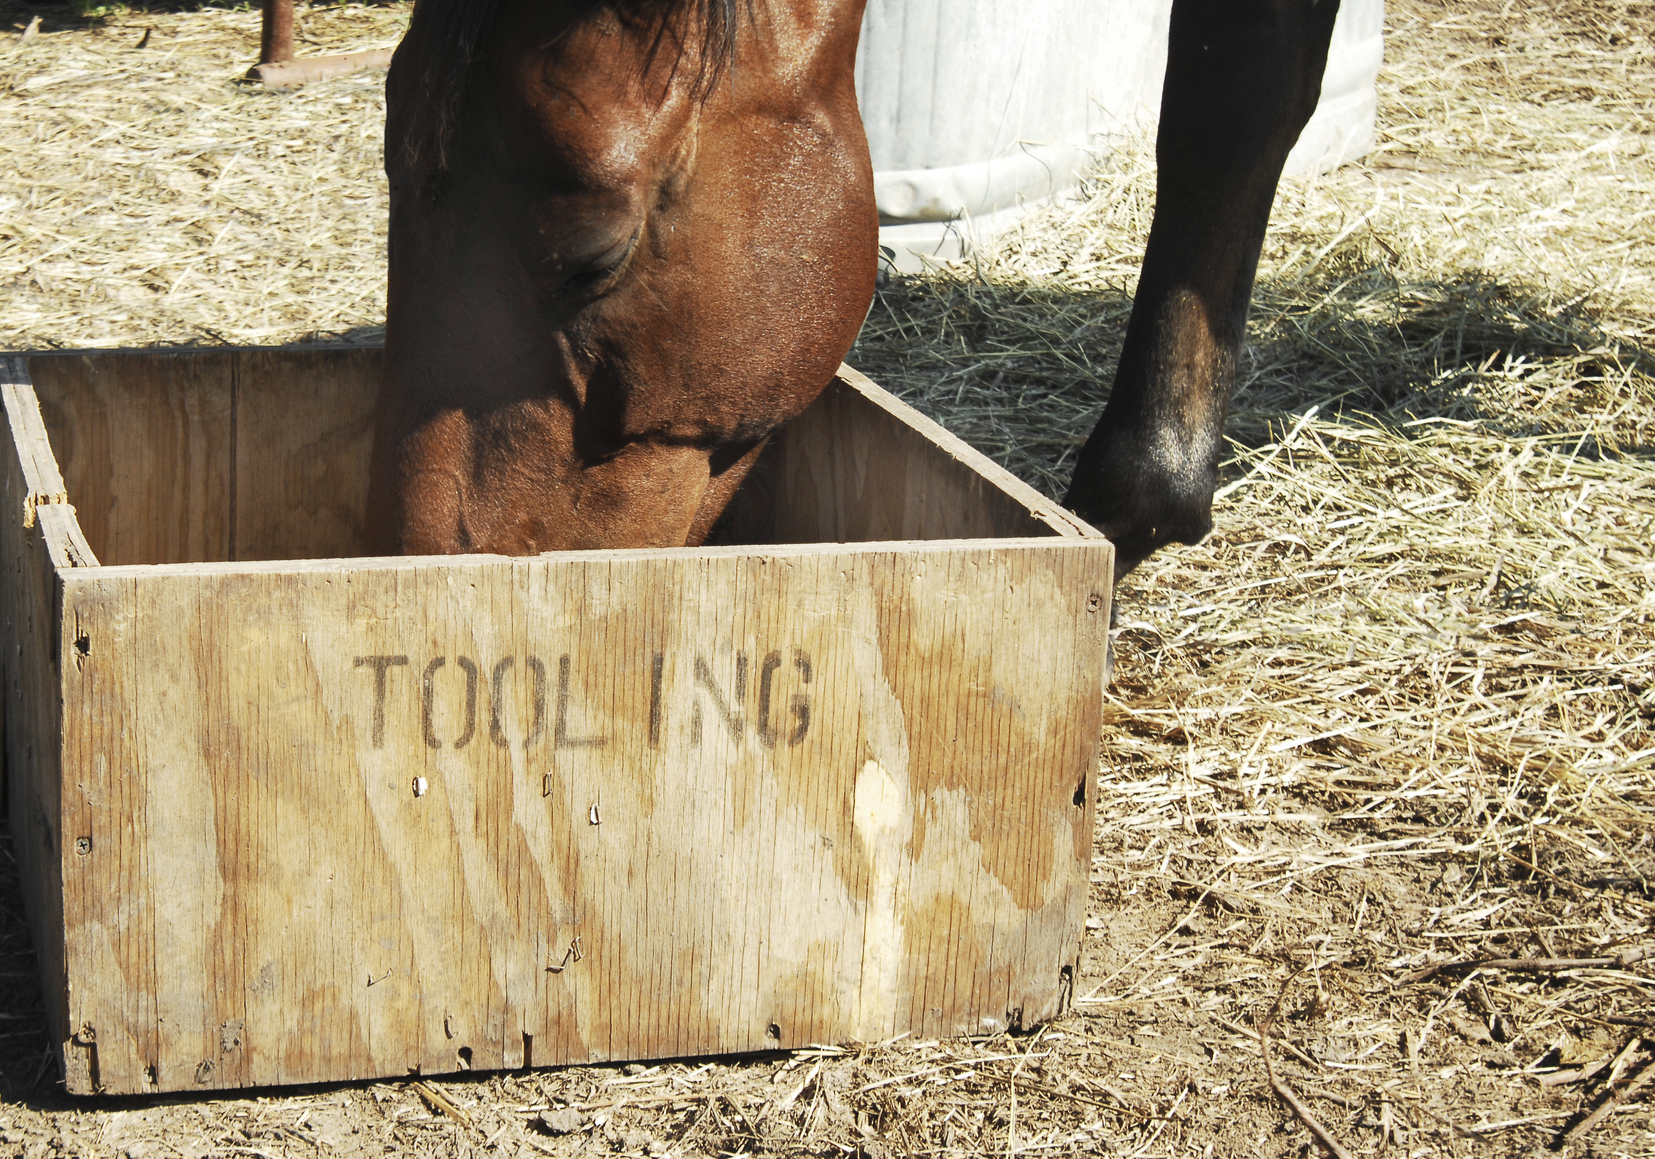 Why Does My Horse Chew Wood?